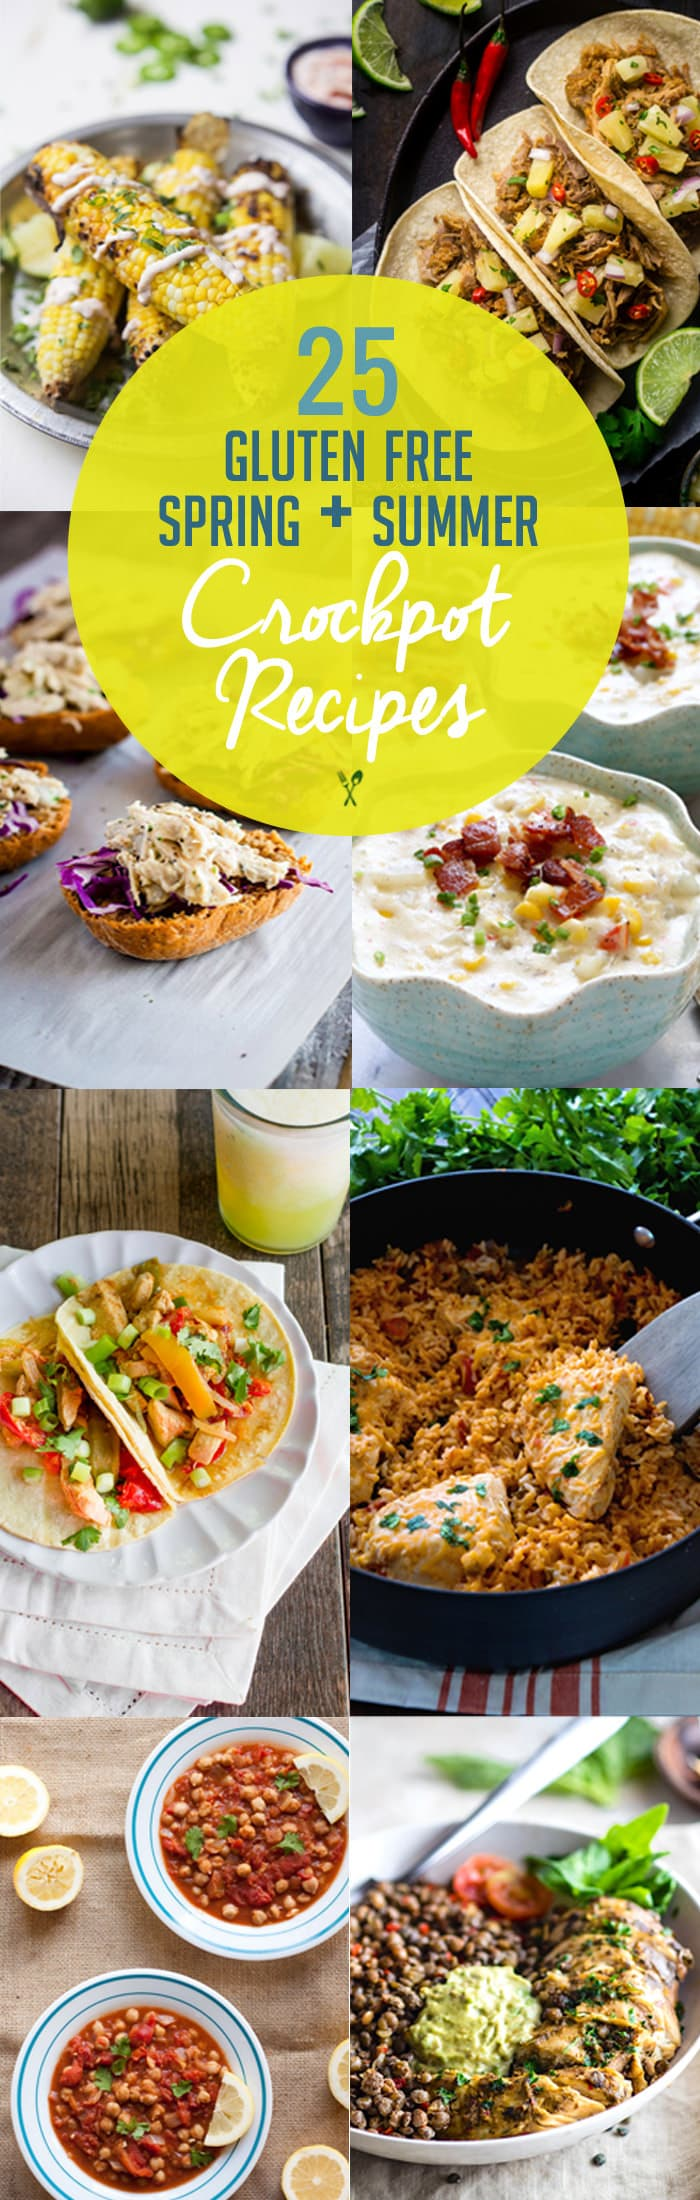 25 Spring/Summer gluten free Crock Pot Recipes! Easy, healthy, gluten free crock pot recipes you can enjoy during warmer months! Fresh ingredients, great for potlucks, and literally NO SWEAT!